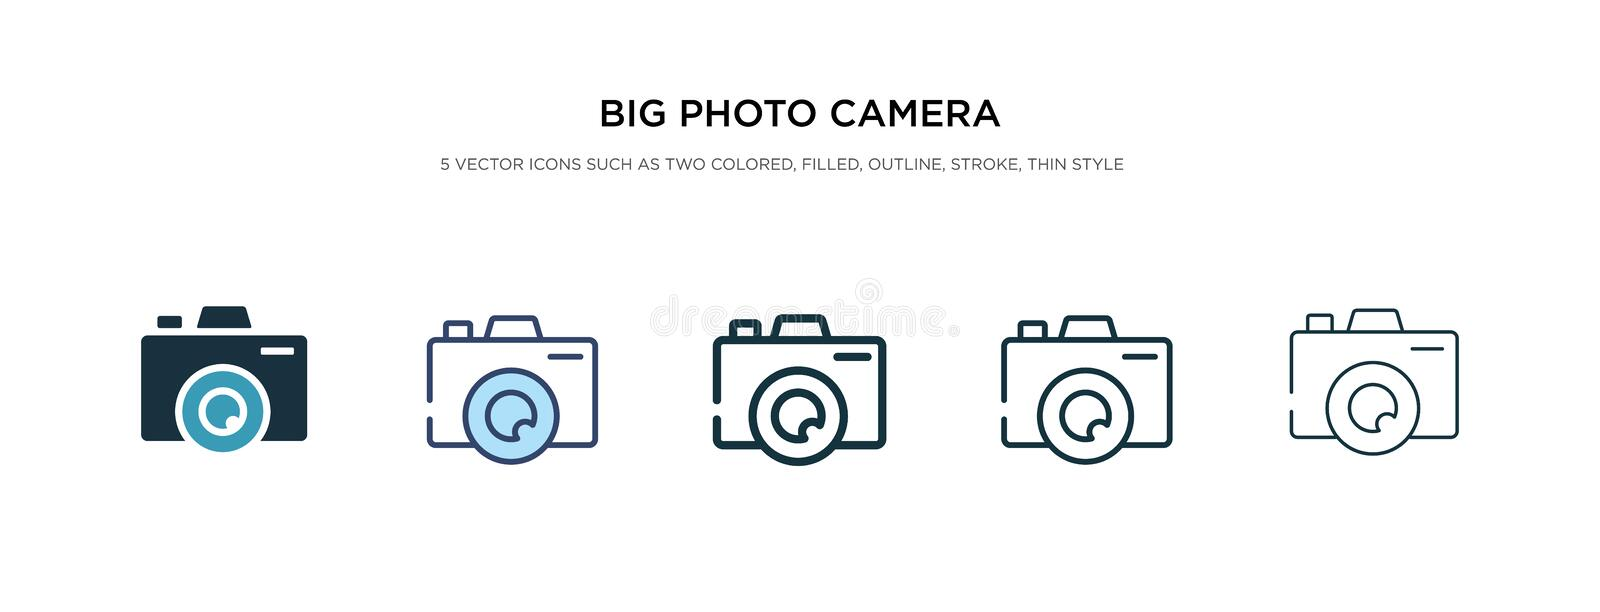 Big photo camera icon in different style vector illustration. two colored and black big photo camera vector icons designed in stock illustration